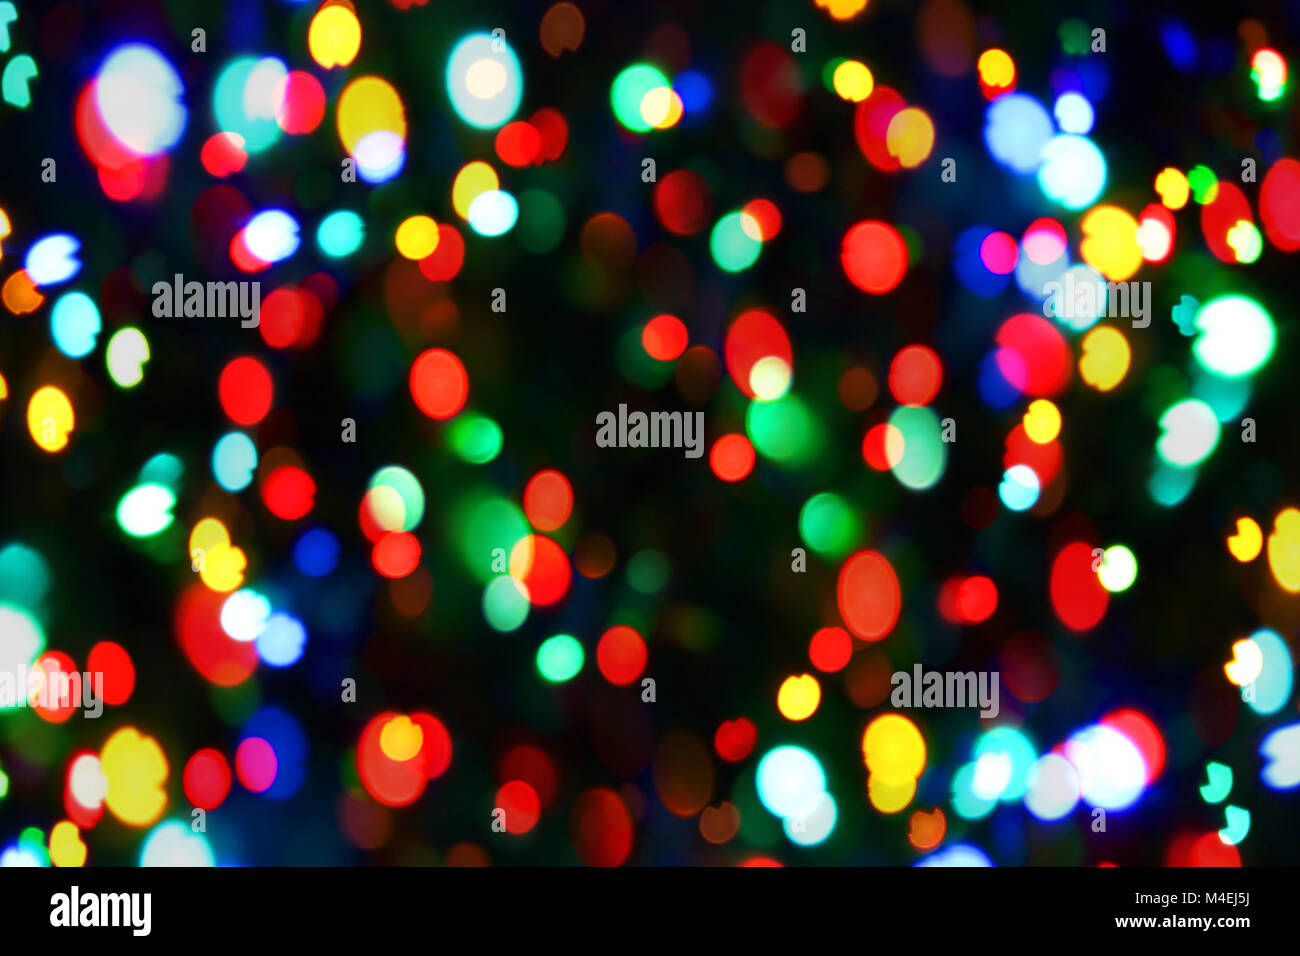 Holiday color unfocused lights - Stock Image